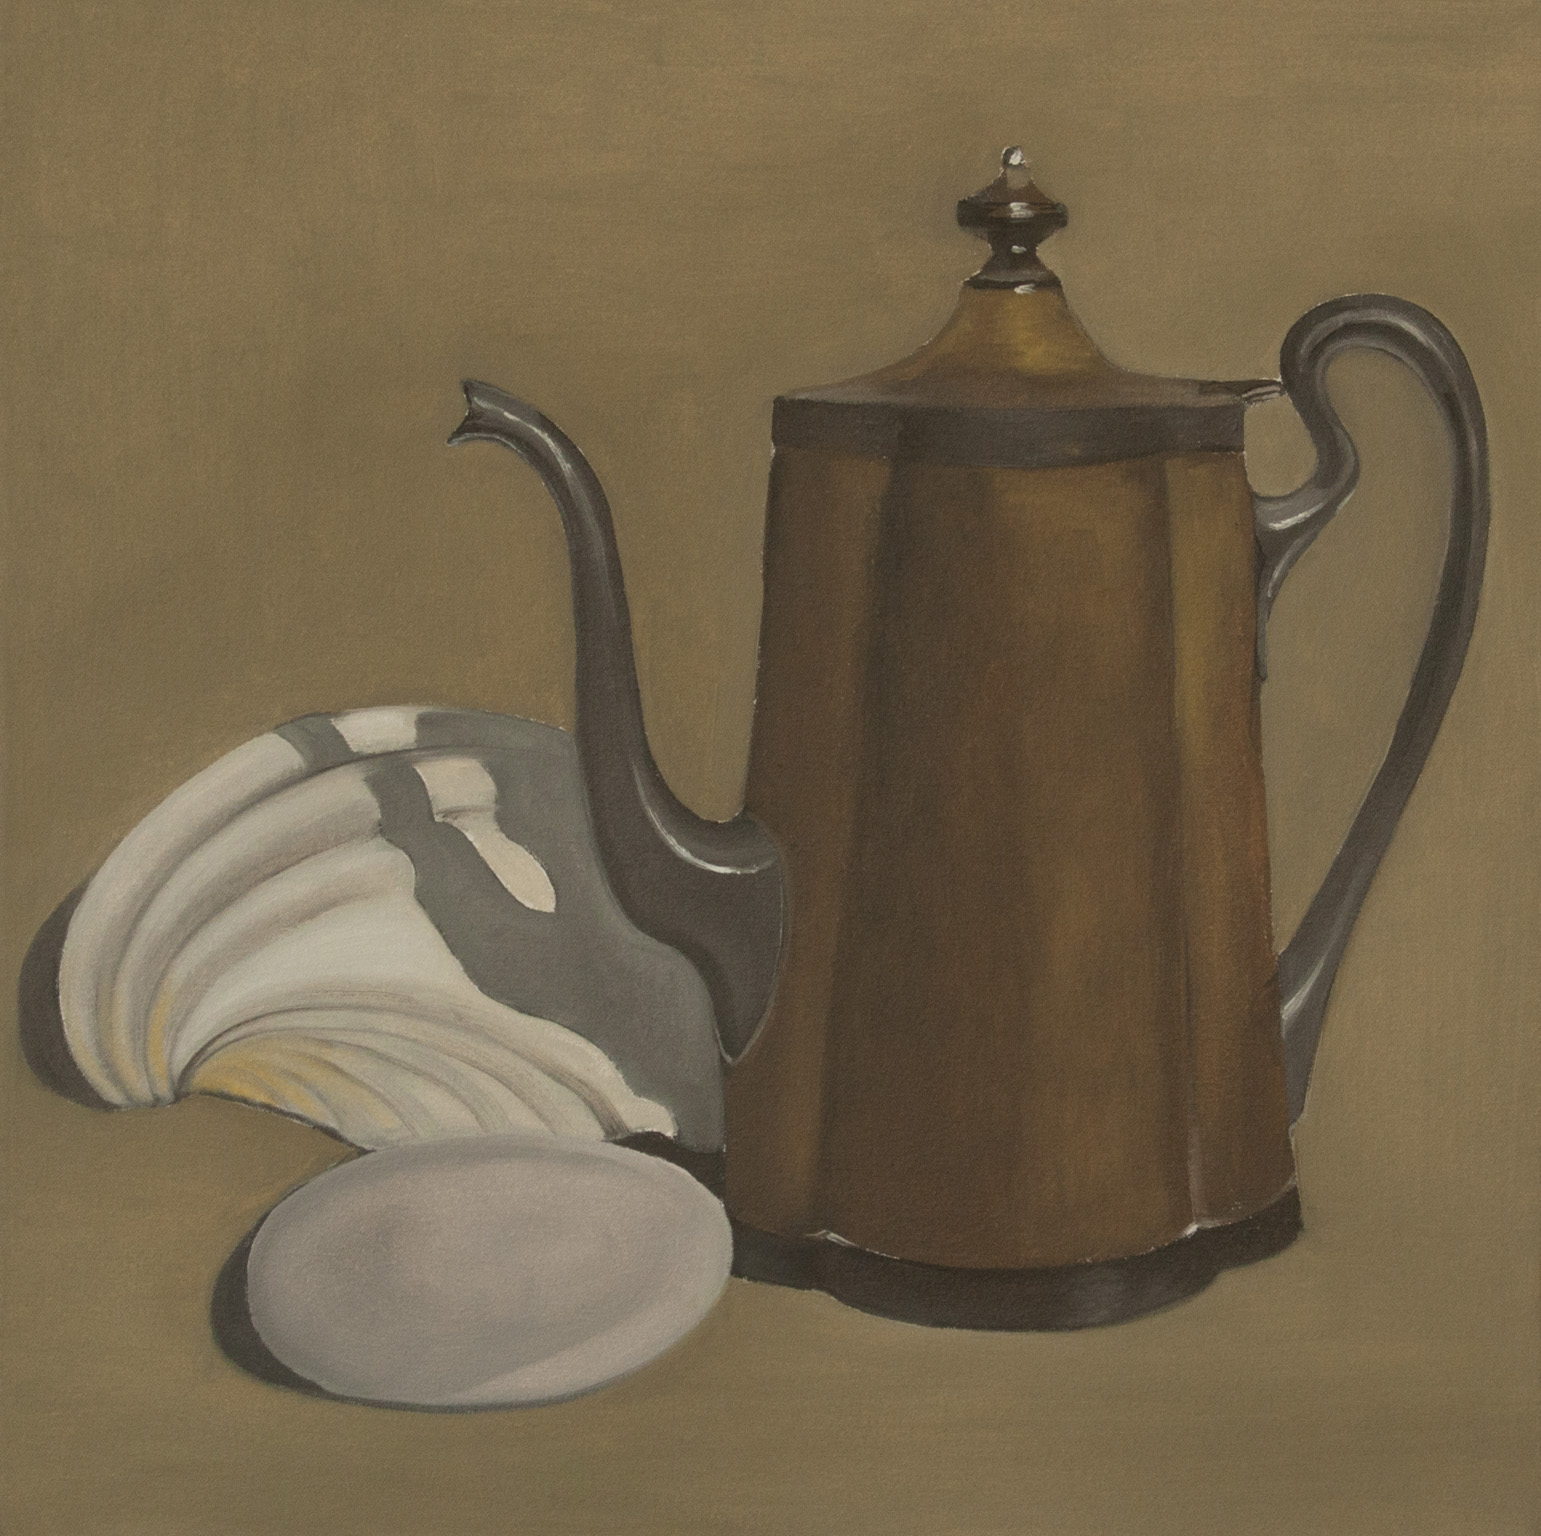 Teapot with Shells 24x24 2017 web